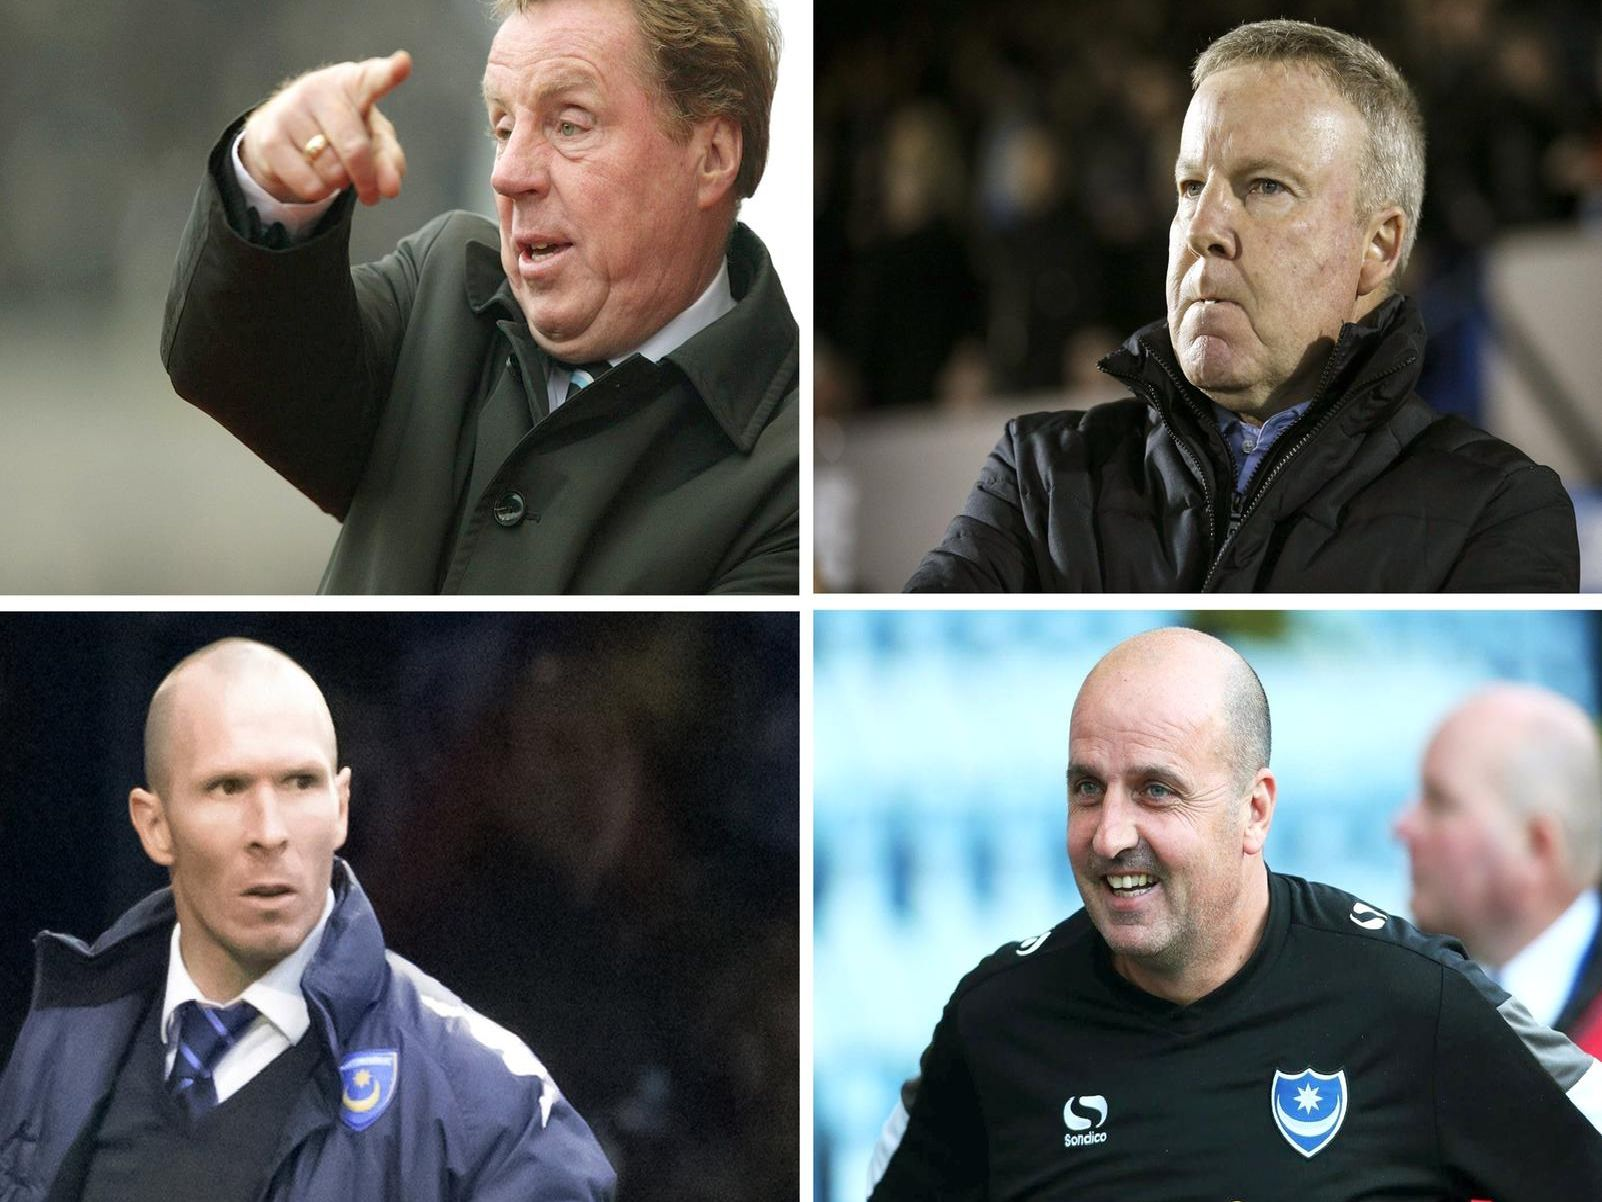 Pompey bosses since 2000